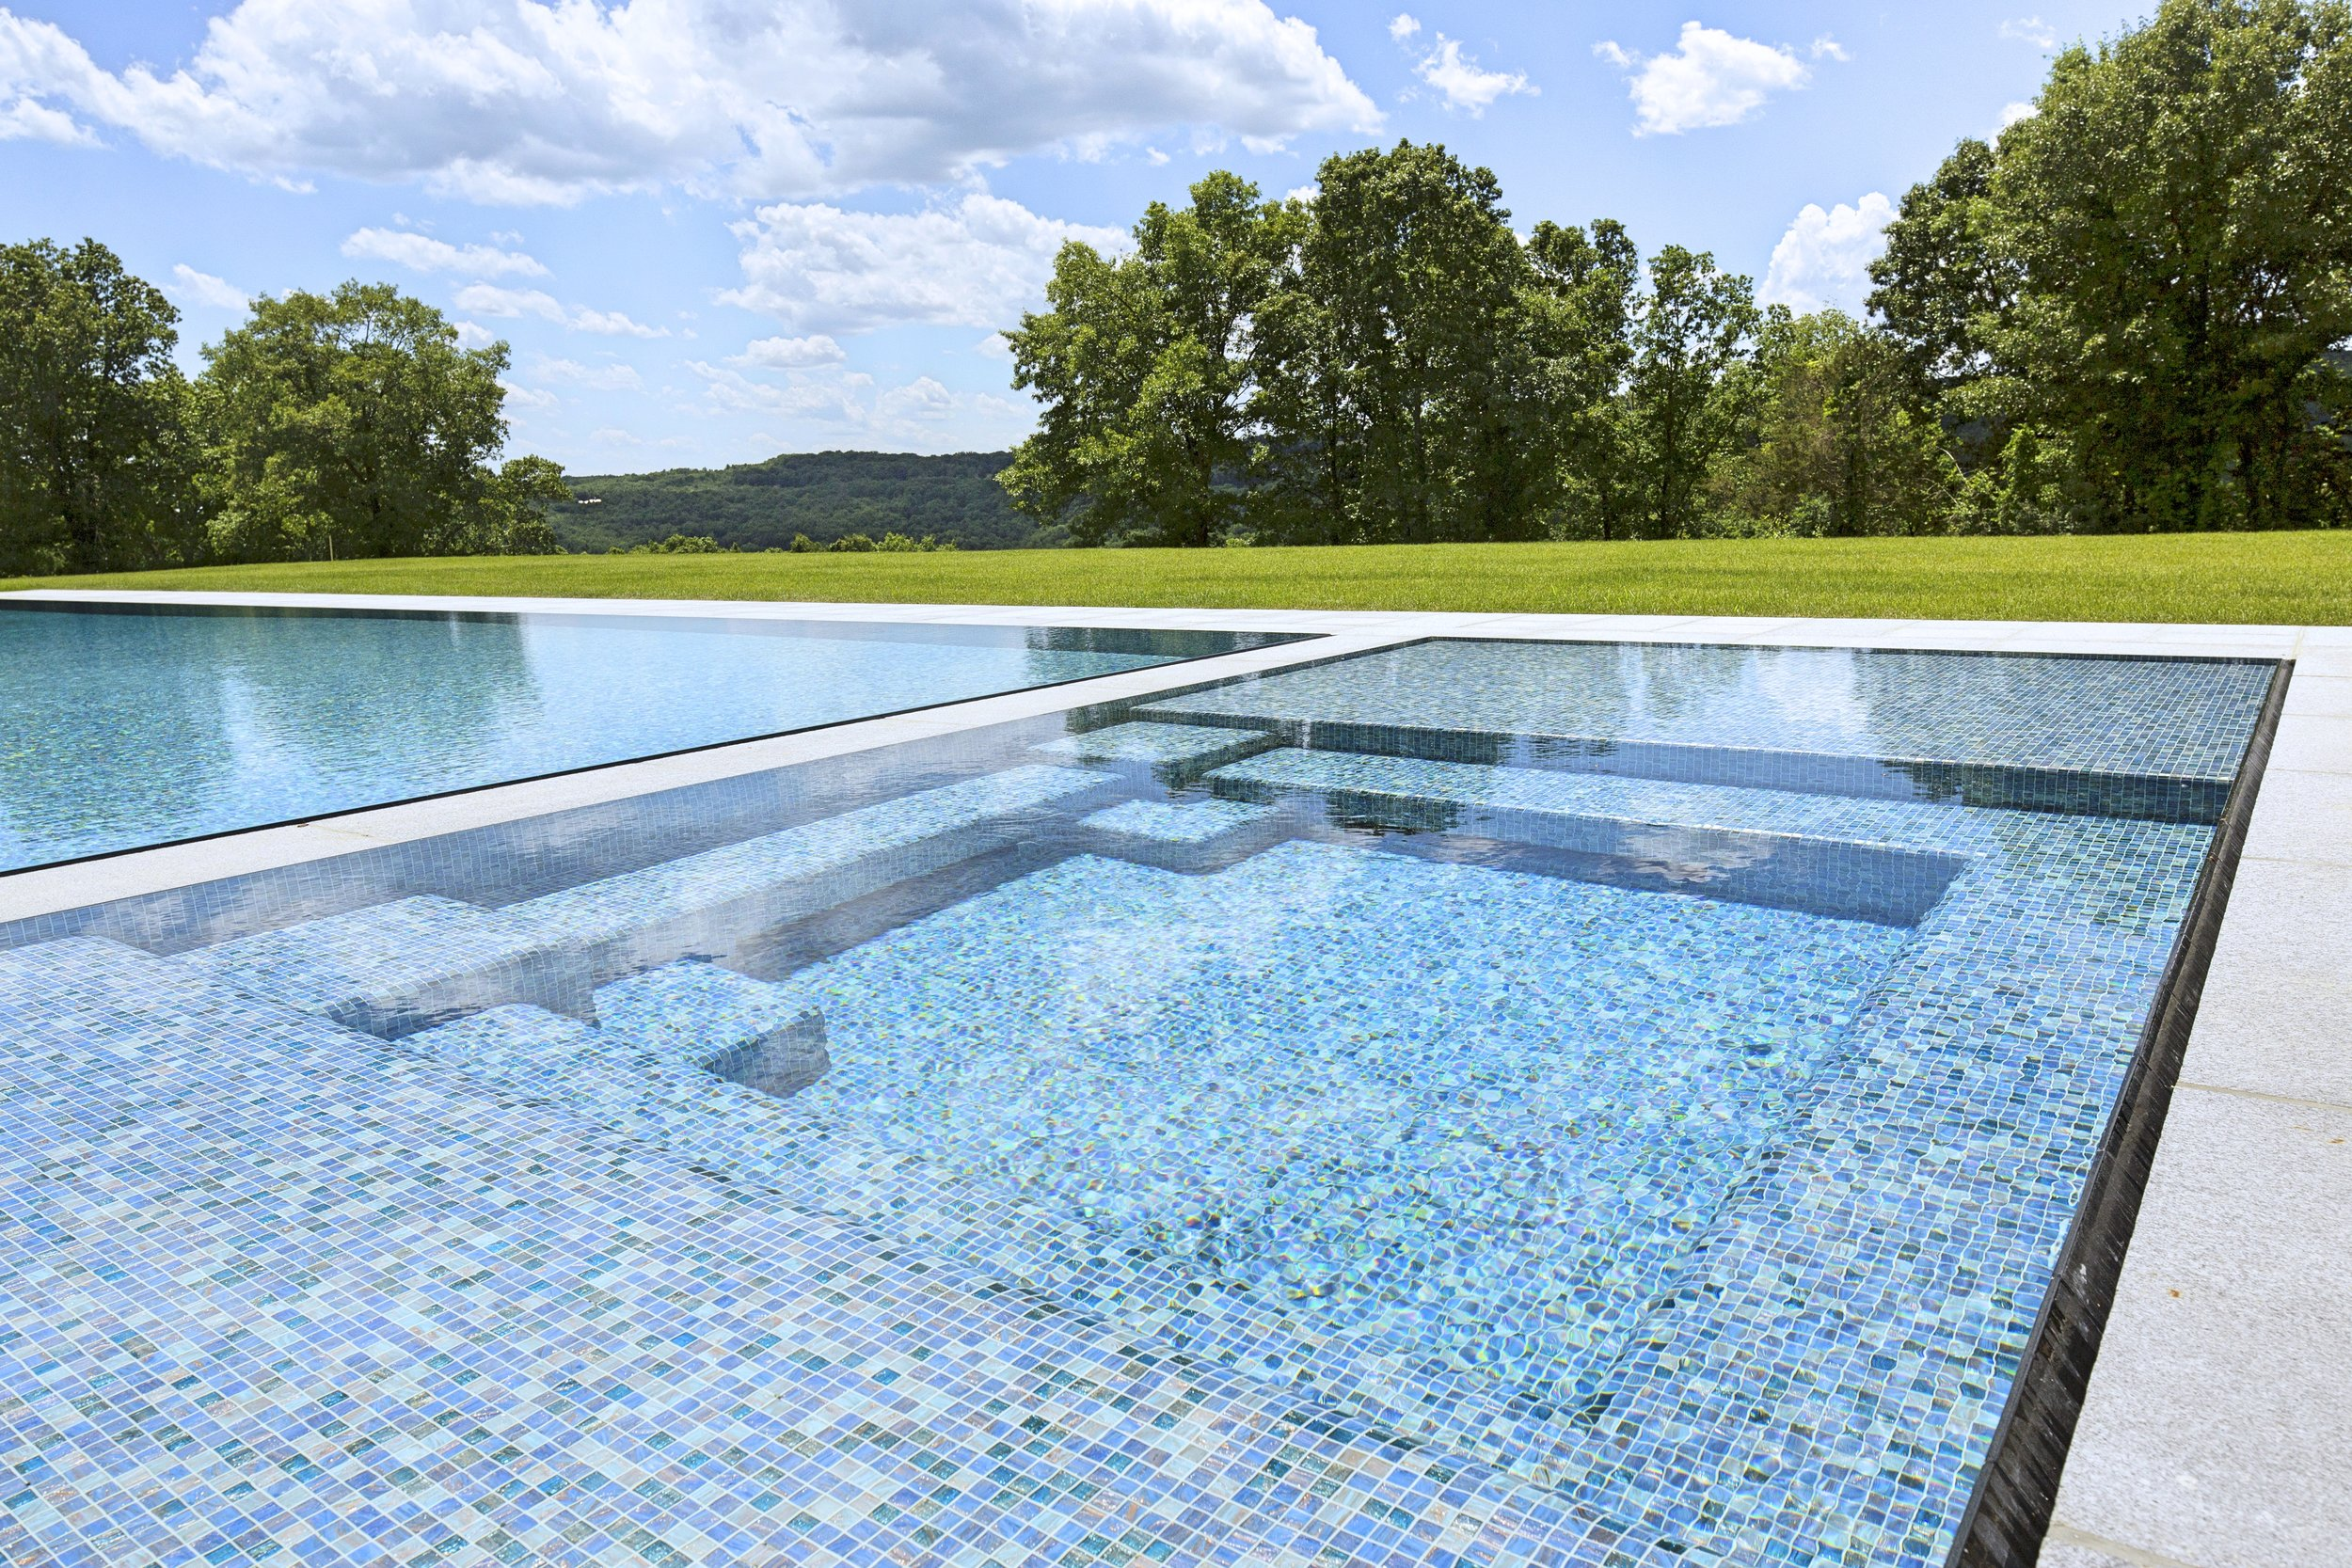 It's not hard to see why this swimming pool/spa combo is called the 'jewel of the property.'